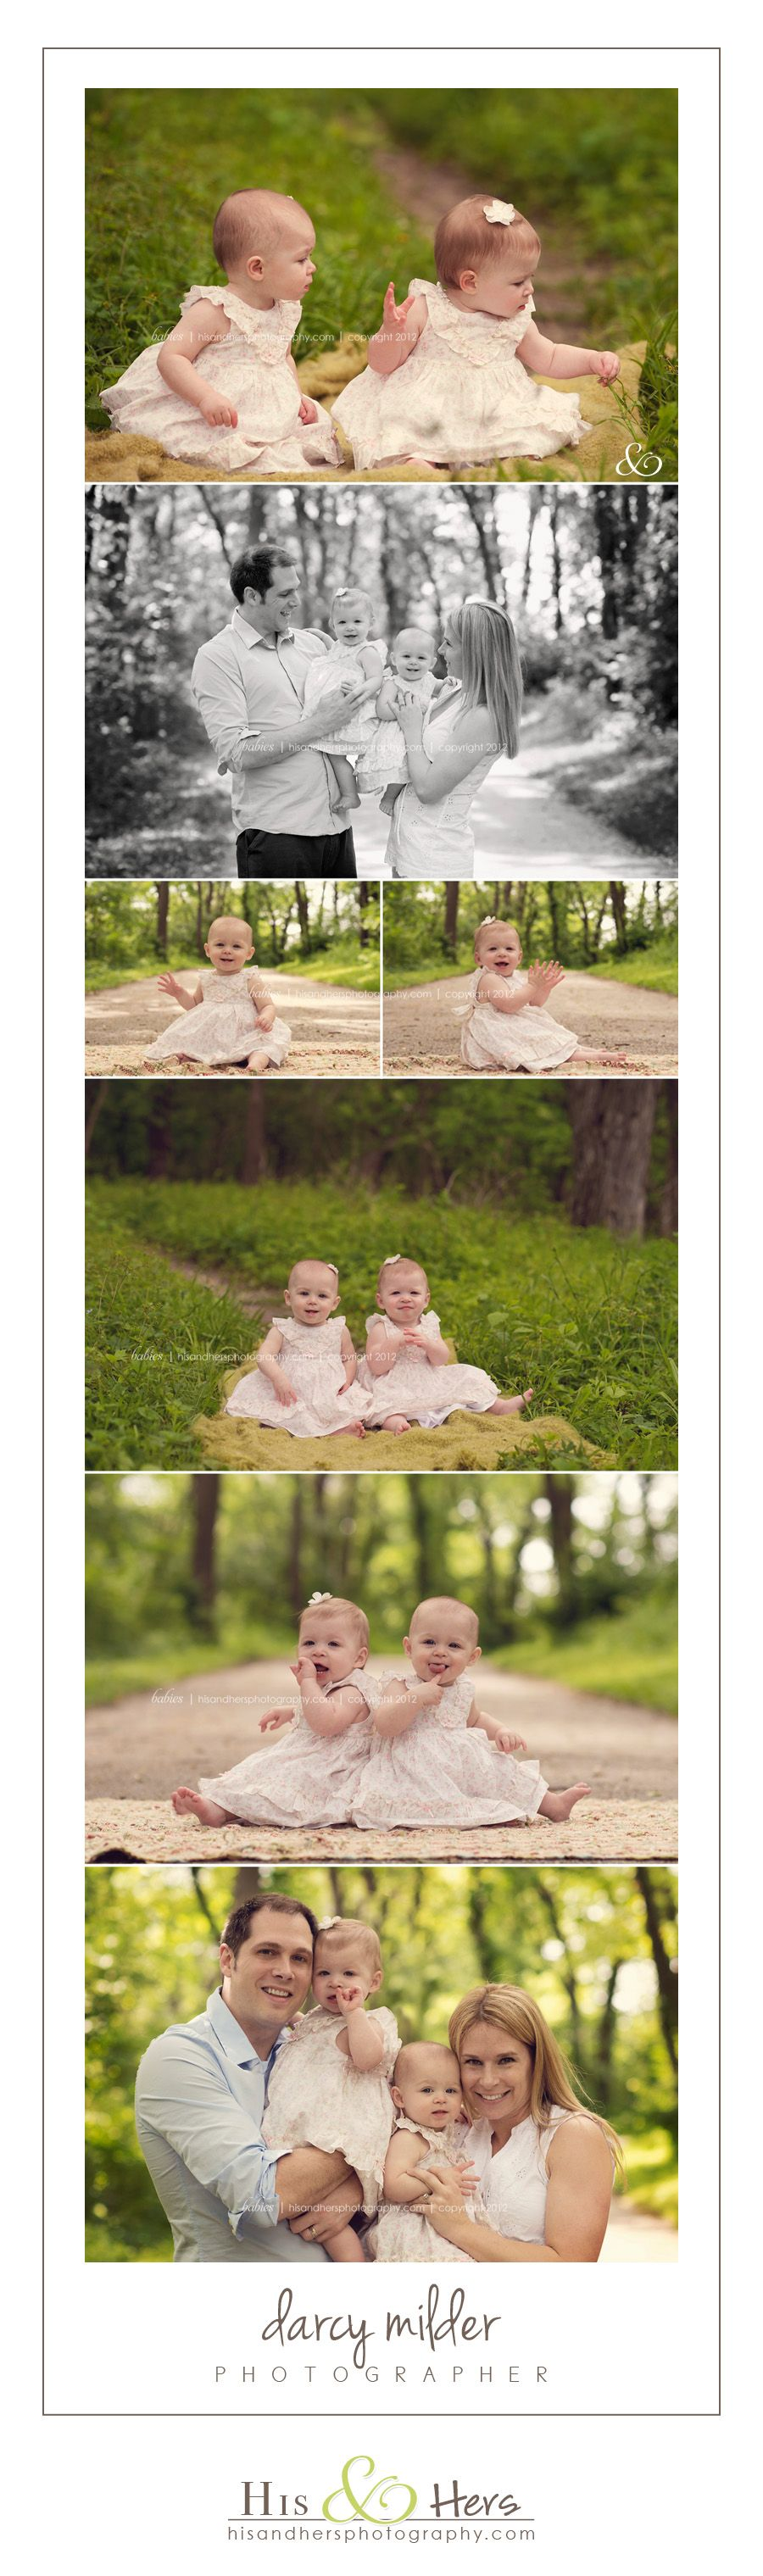 twins 1 year old portraits iowa baby family child photographer | Darcy Milder | His & Hers